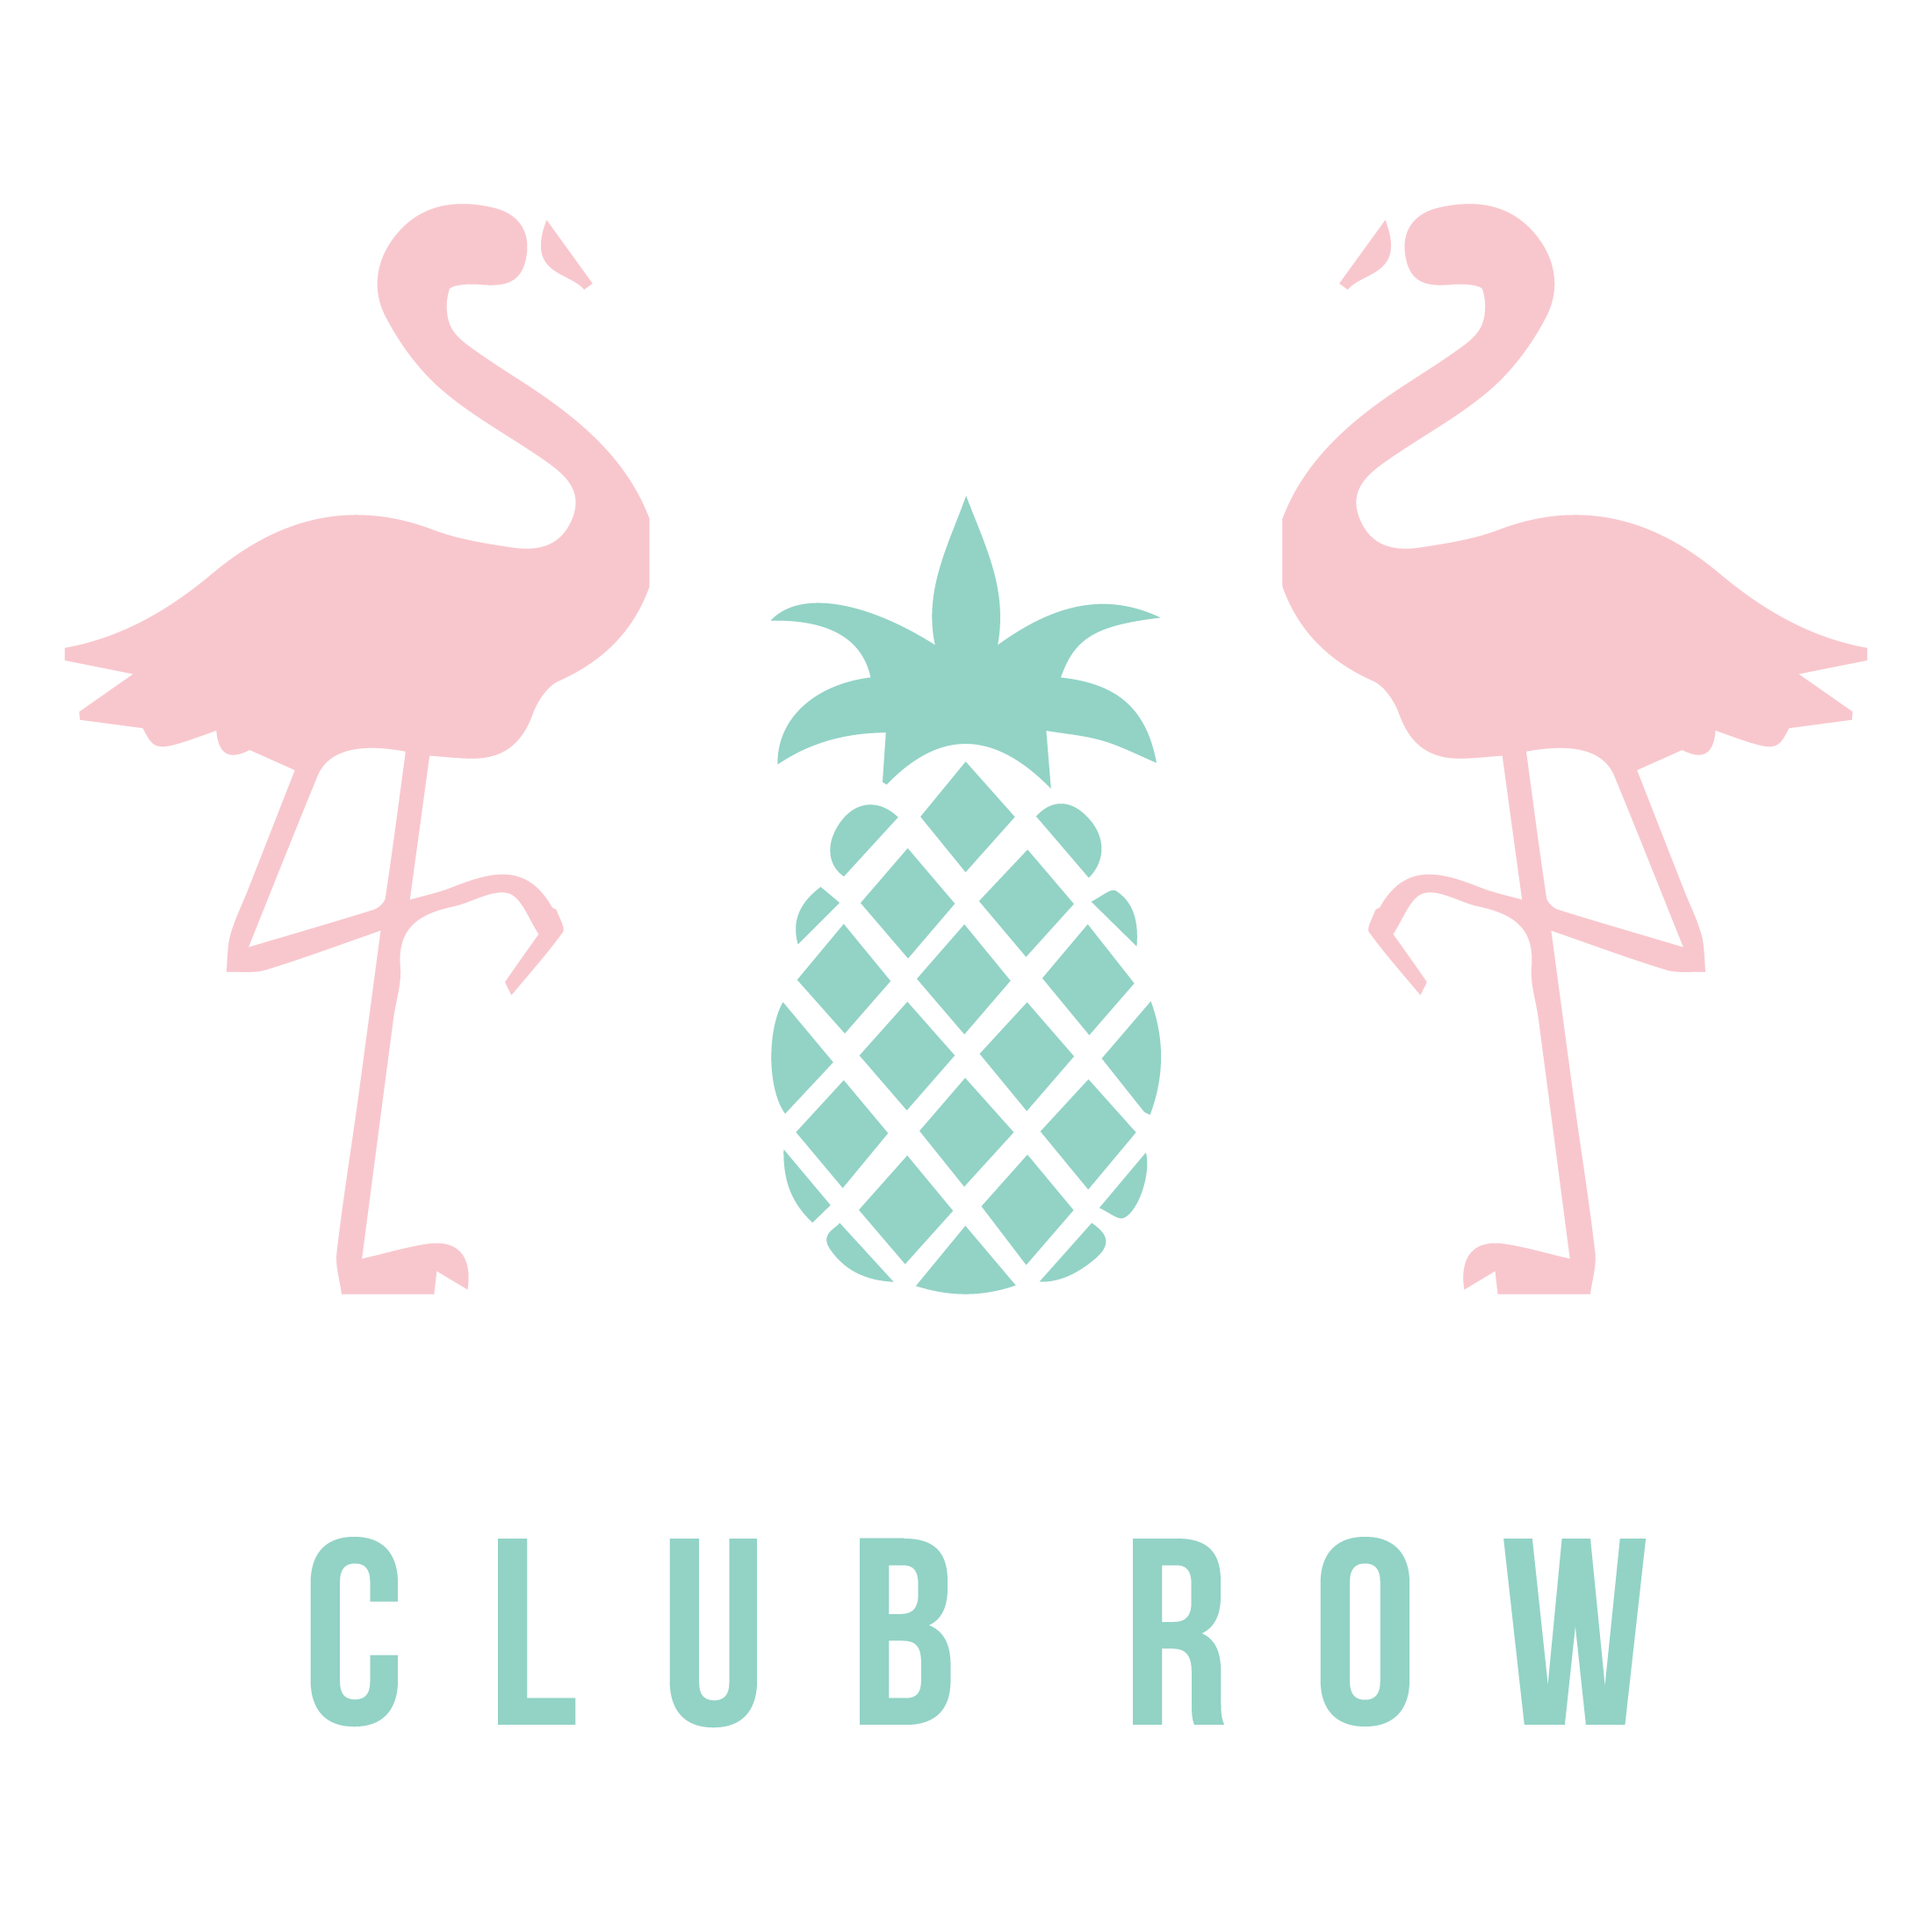 club-row-logo-2.png